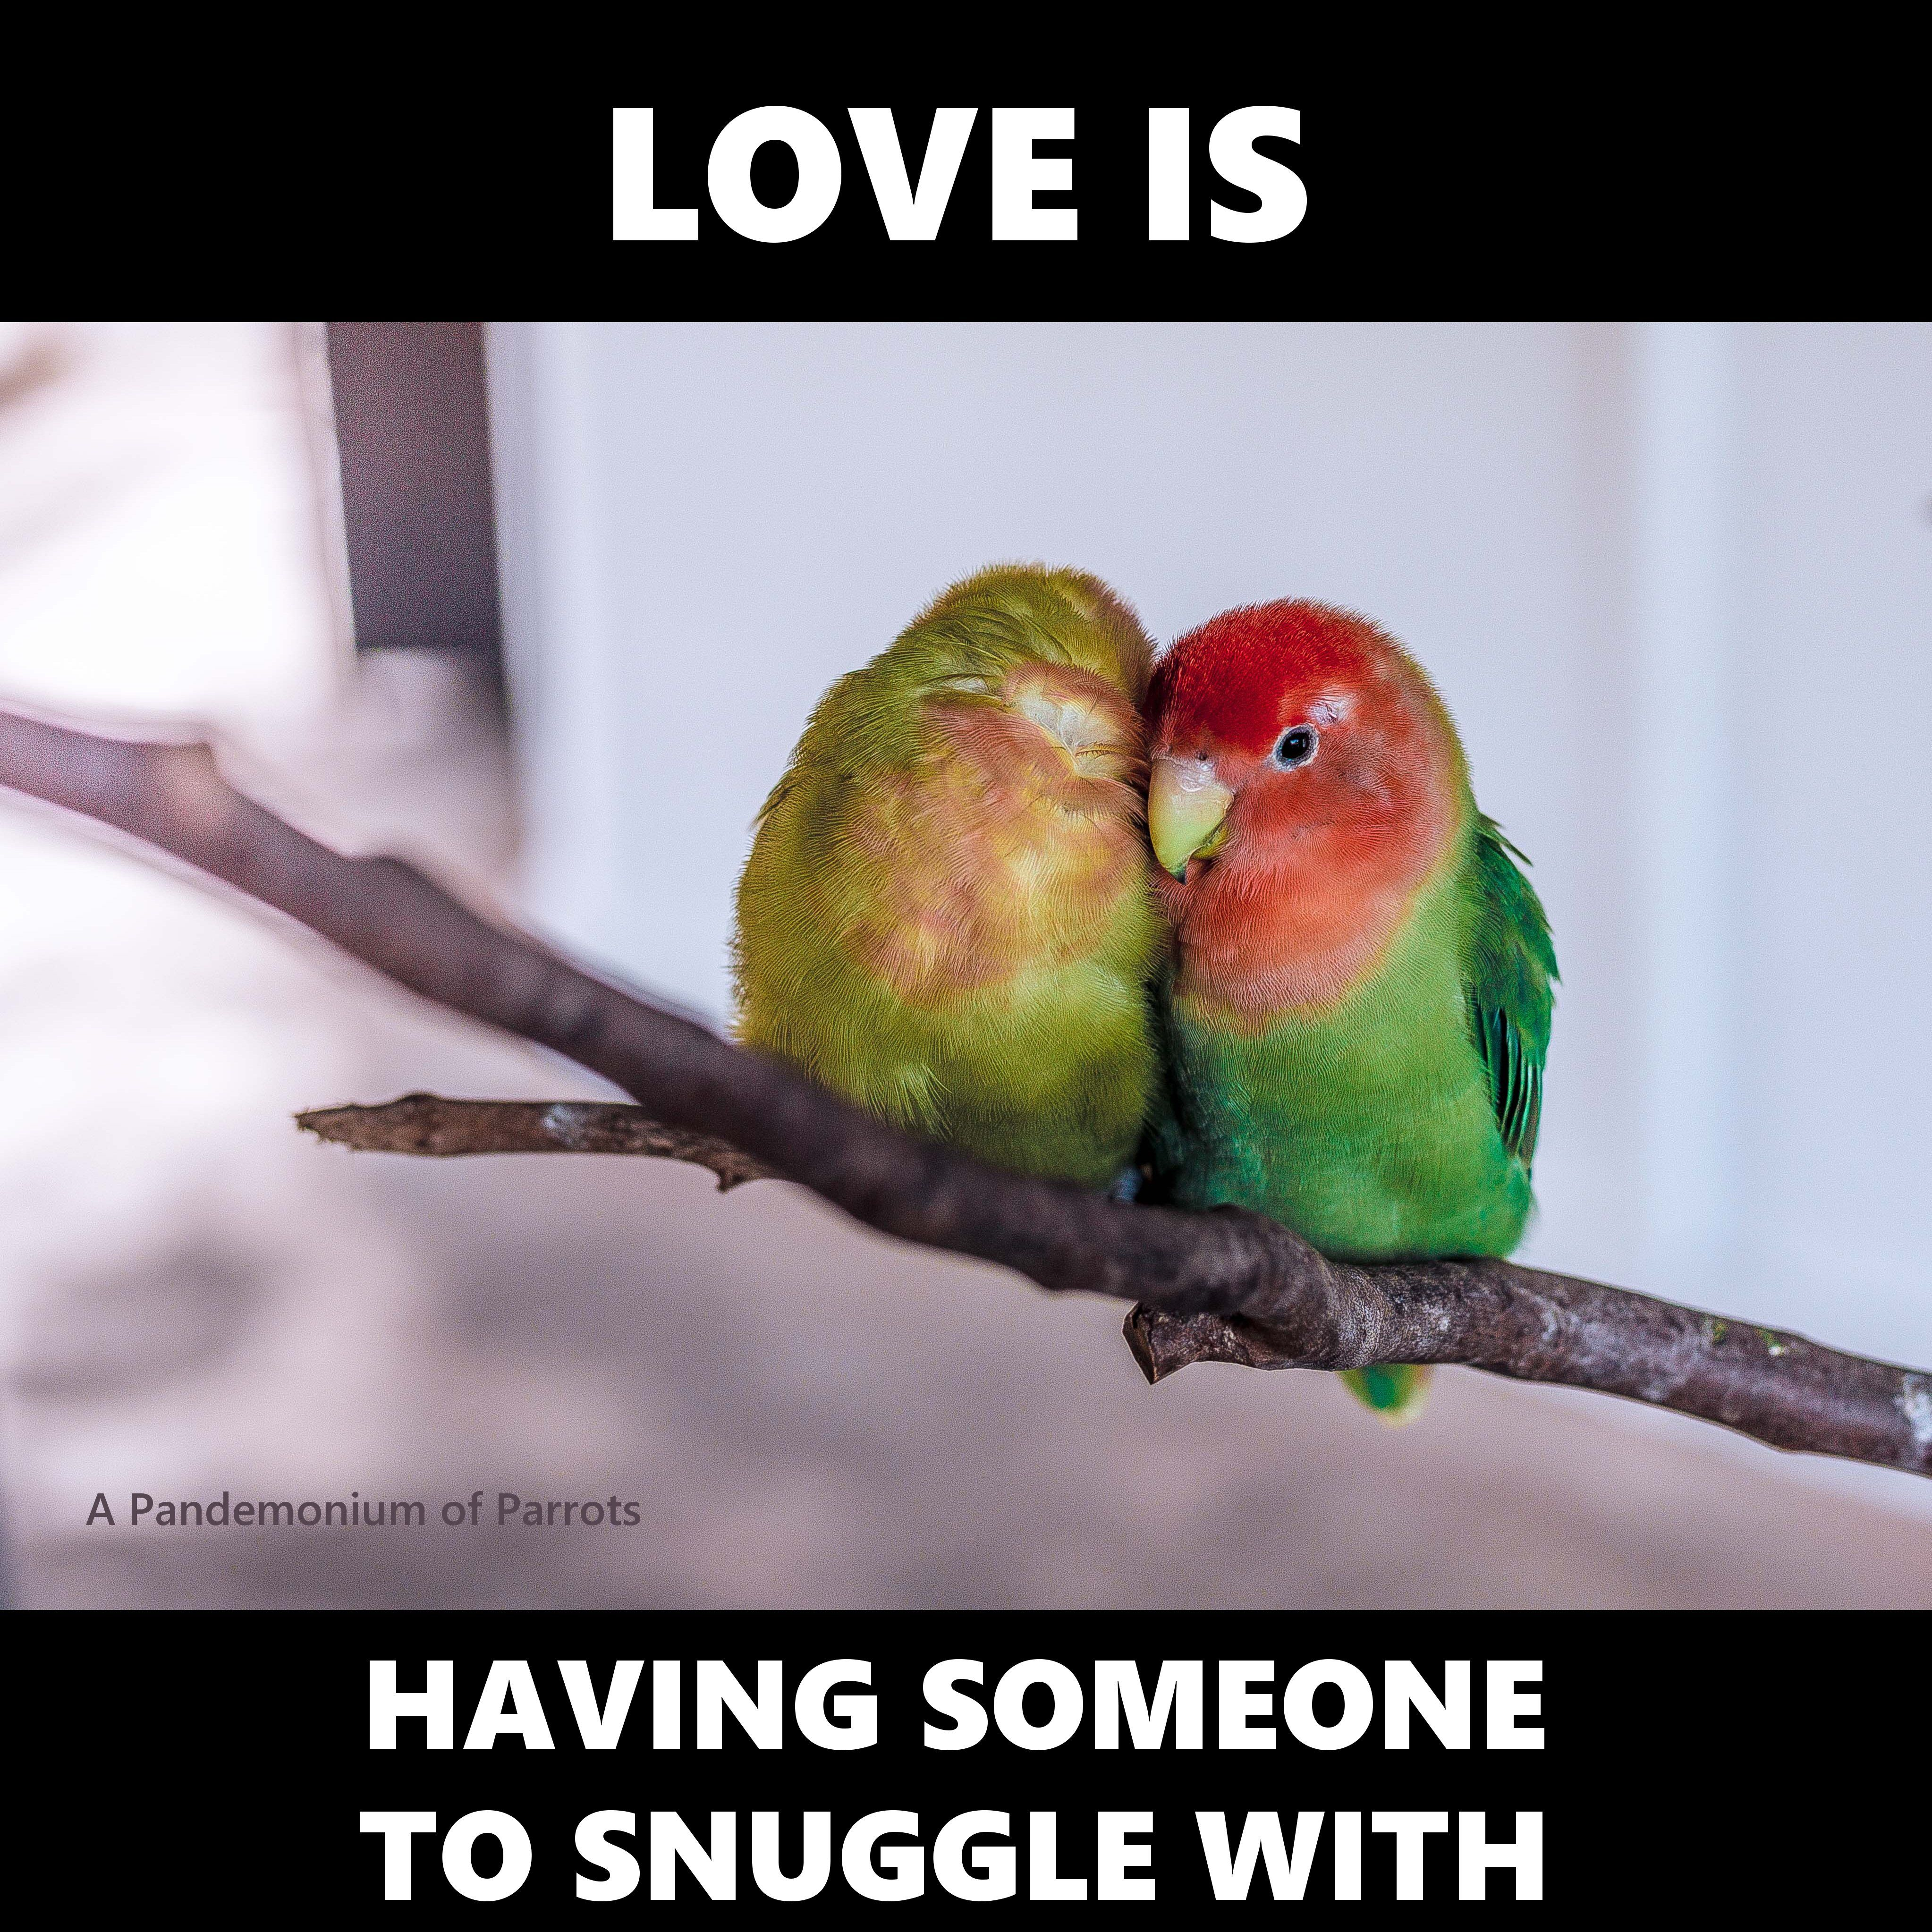 Love Is Having Someone To Snuggle With Funny Parrot Meme Parrotmeme Funnymemes Parrot Loveis Funnyparrotmeme Animal Love Quotes Marriage Funny Parrots